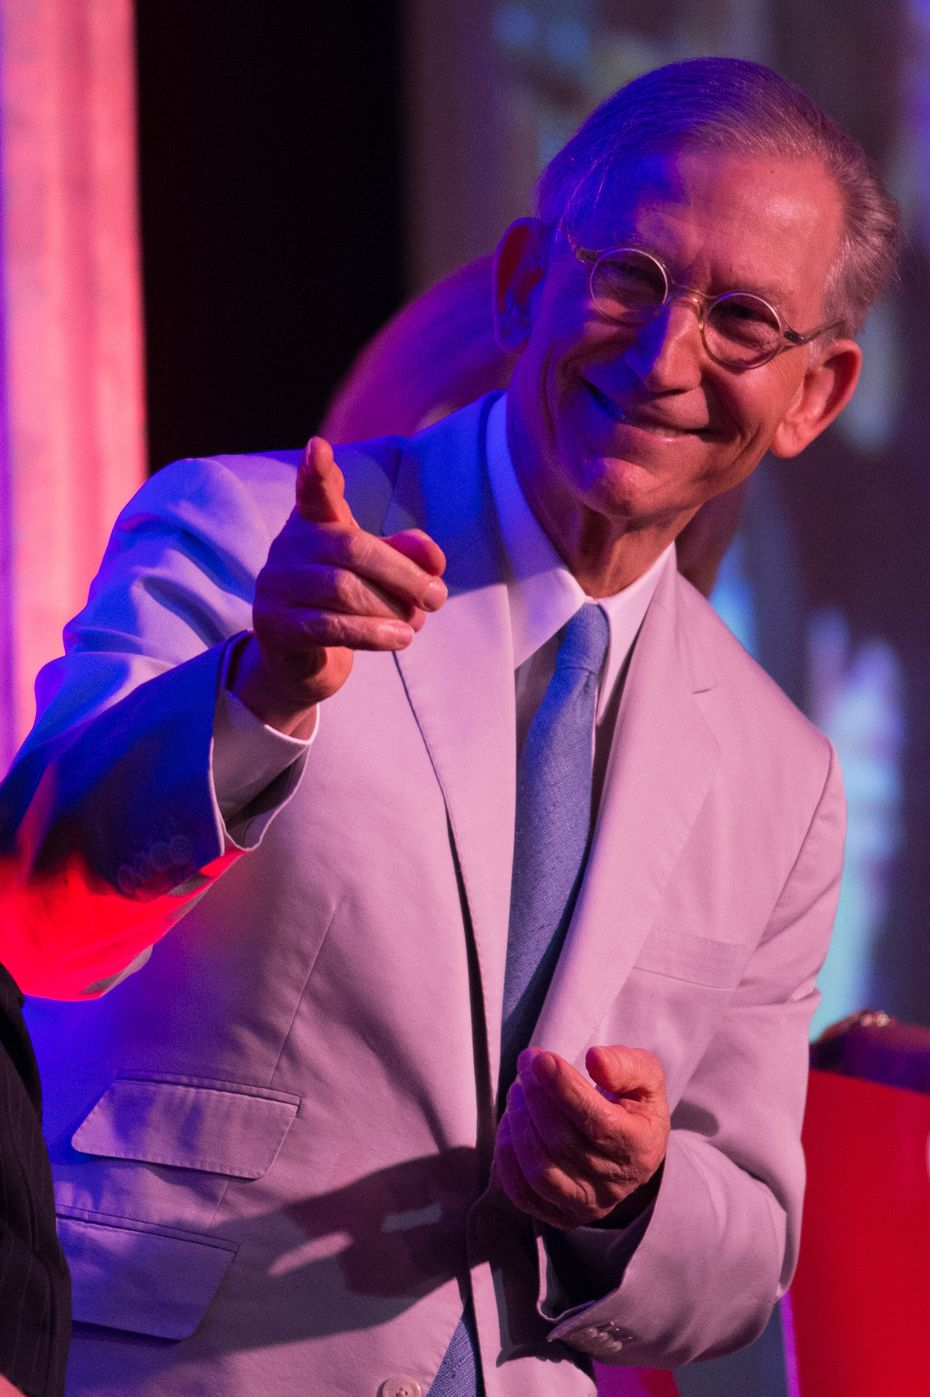 H-E-B chairman and CEO Charles Butt stands on stage during the 2015 H-E-B Excellence in Education Awards.